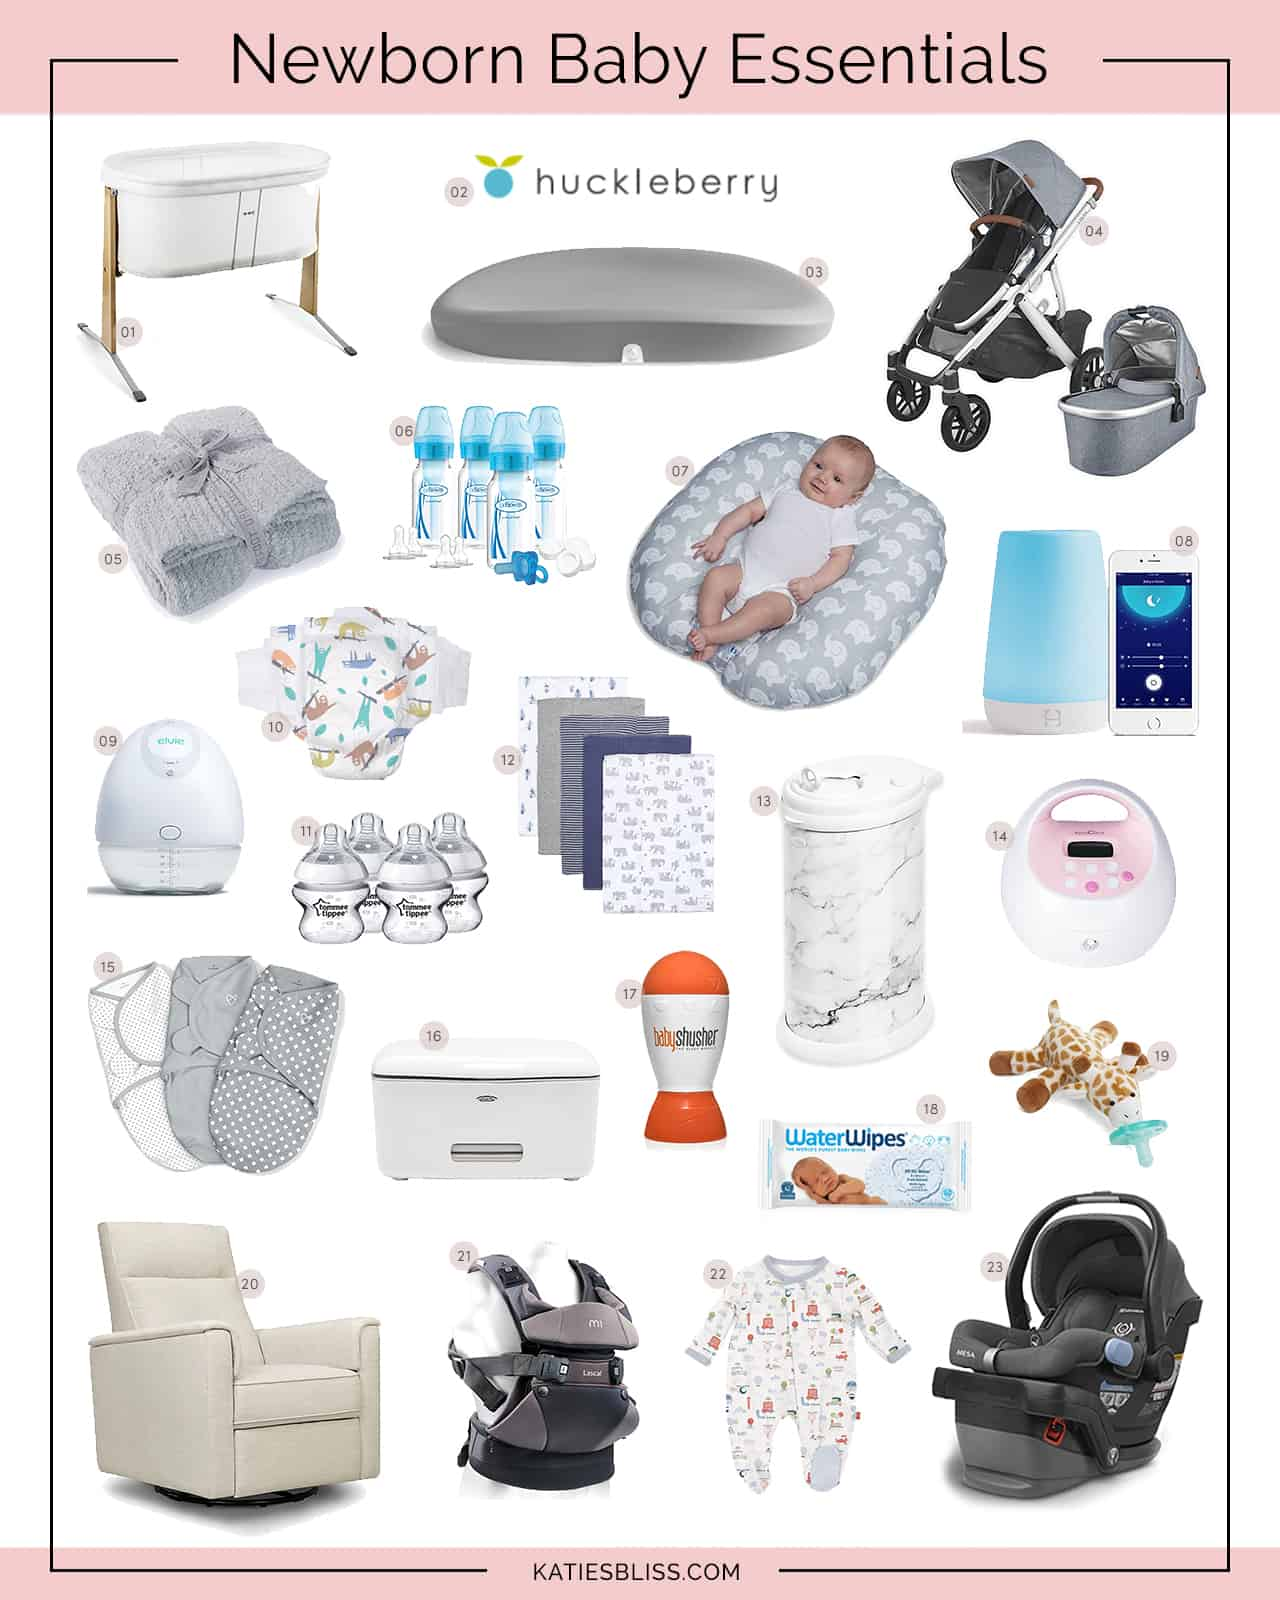 Katies Bliss Newborn Baby Essentials